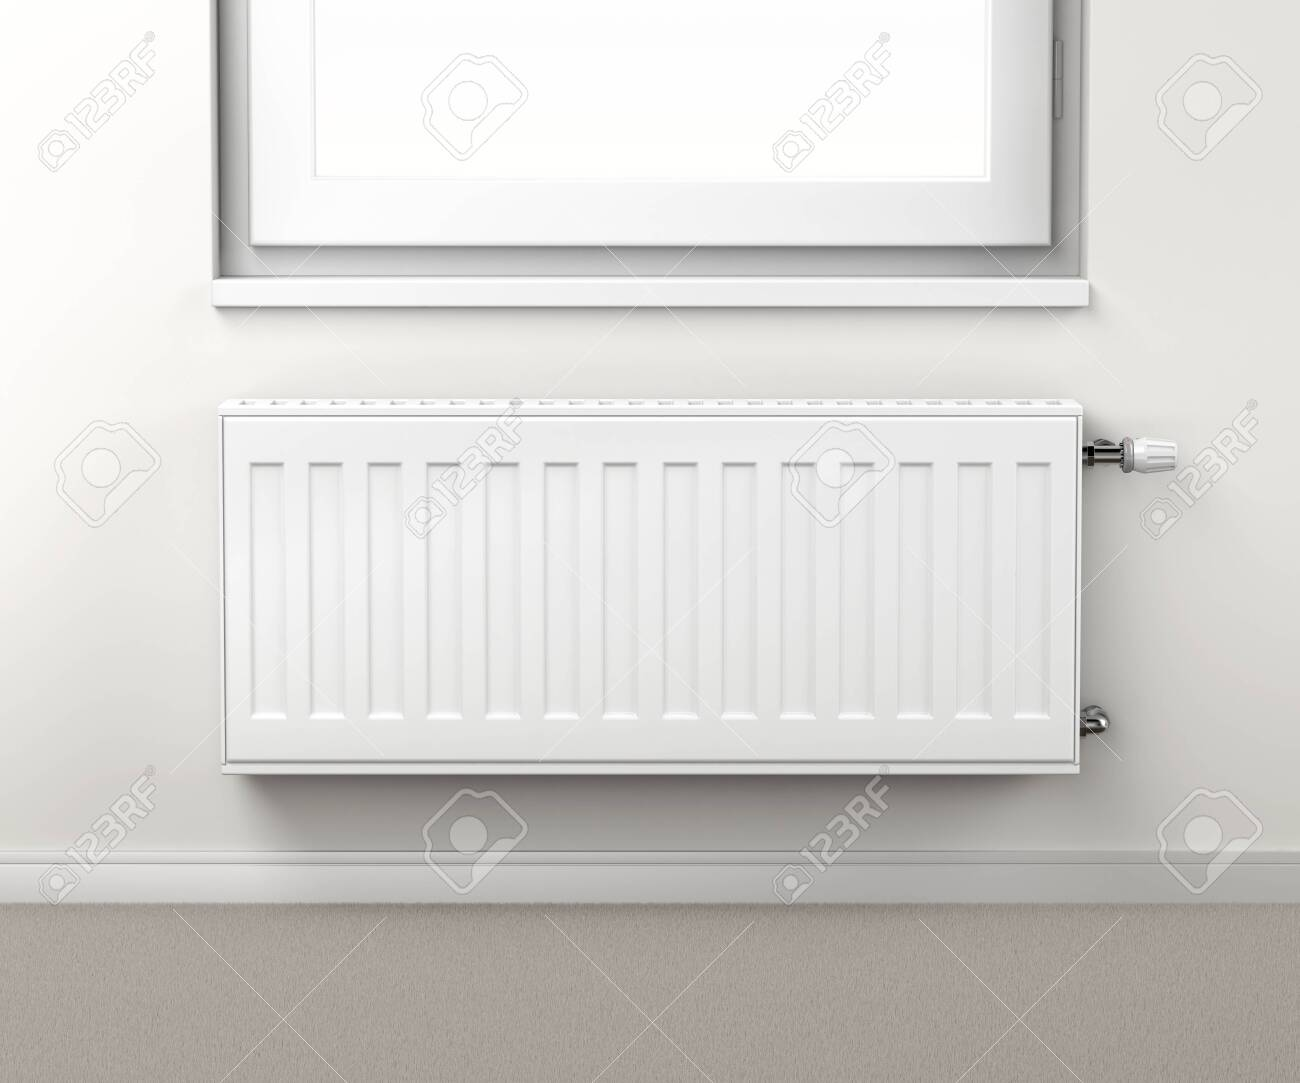 Heating Radiator In The Room Mounted Under The Window Stock Photo Picture And Royalty Free Image Image 122803871